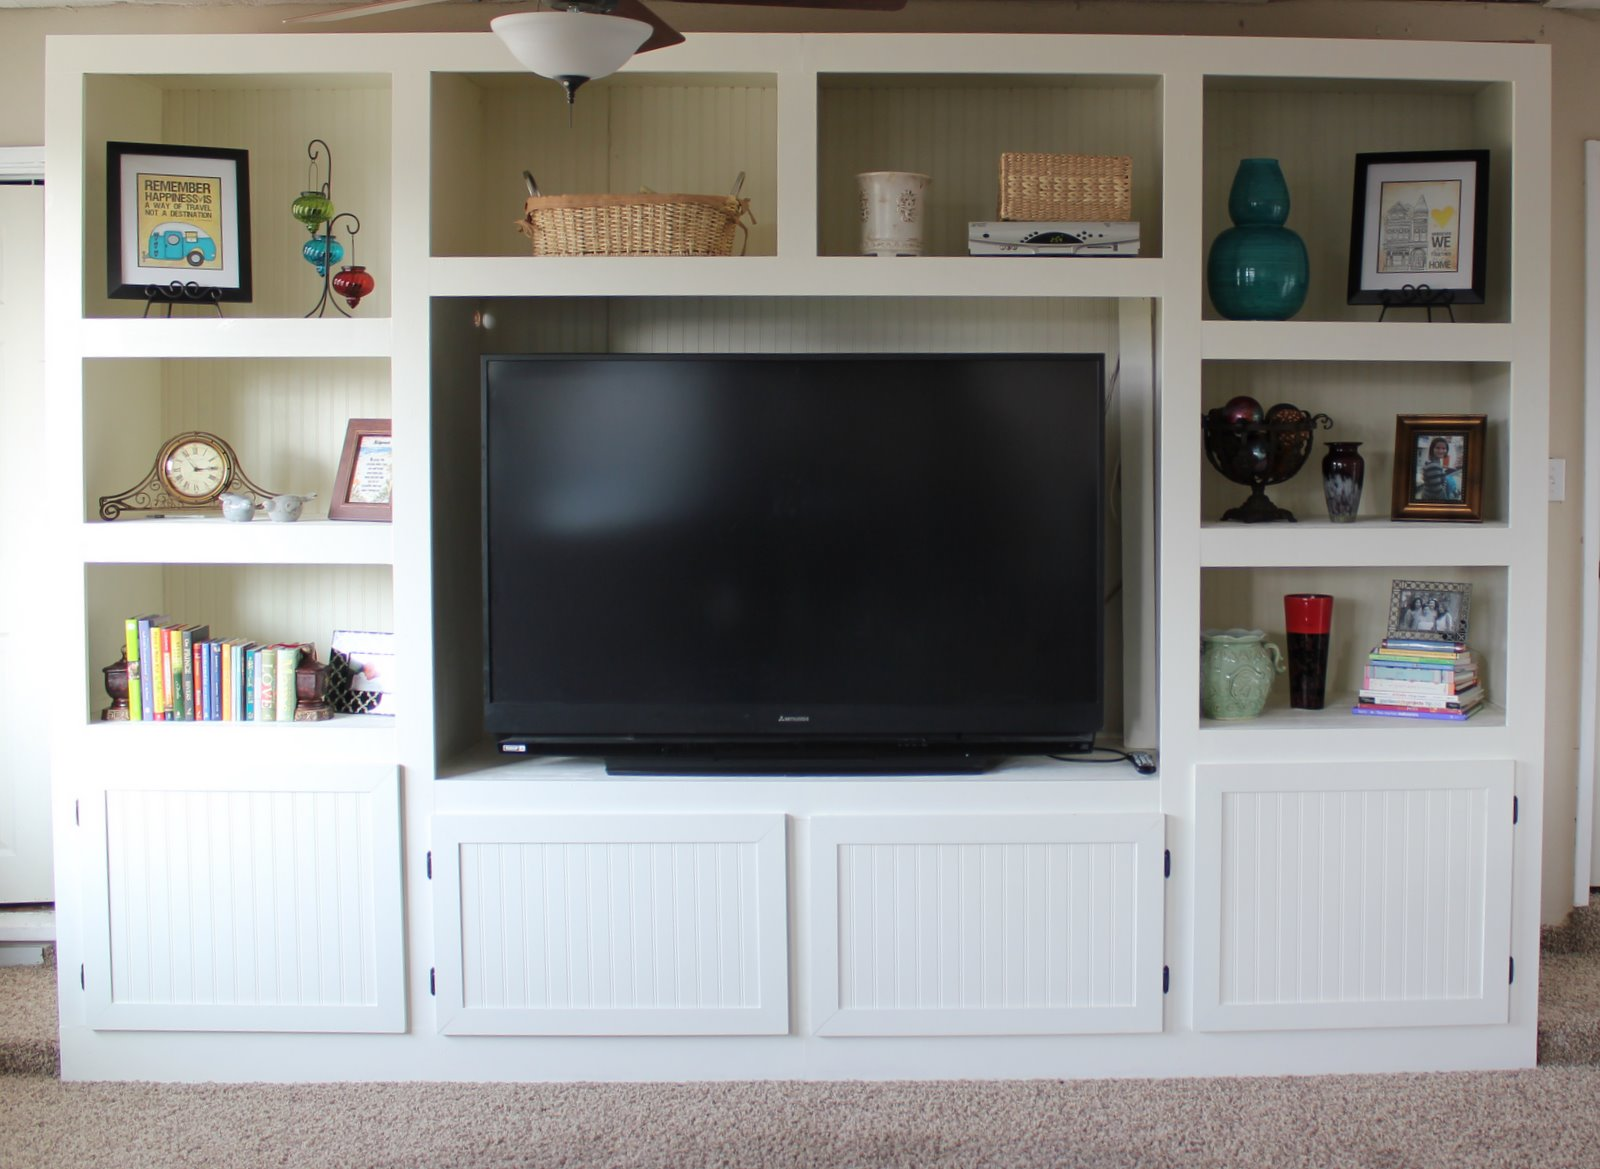 Living Room Renovation With DIY Entertainment Center For Flat Screen TV